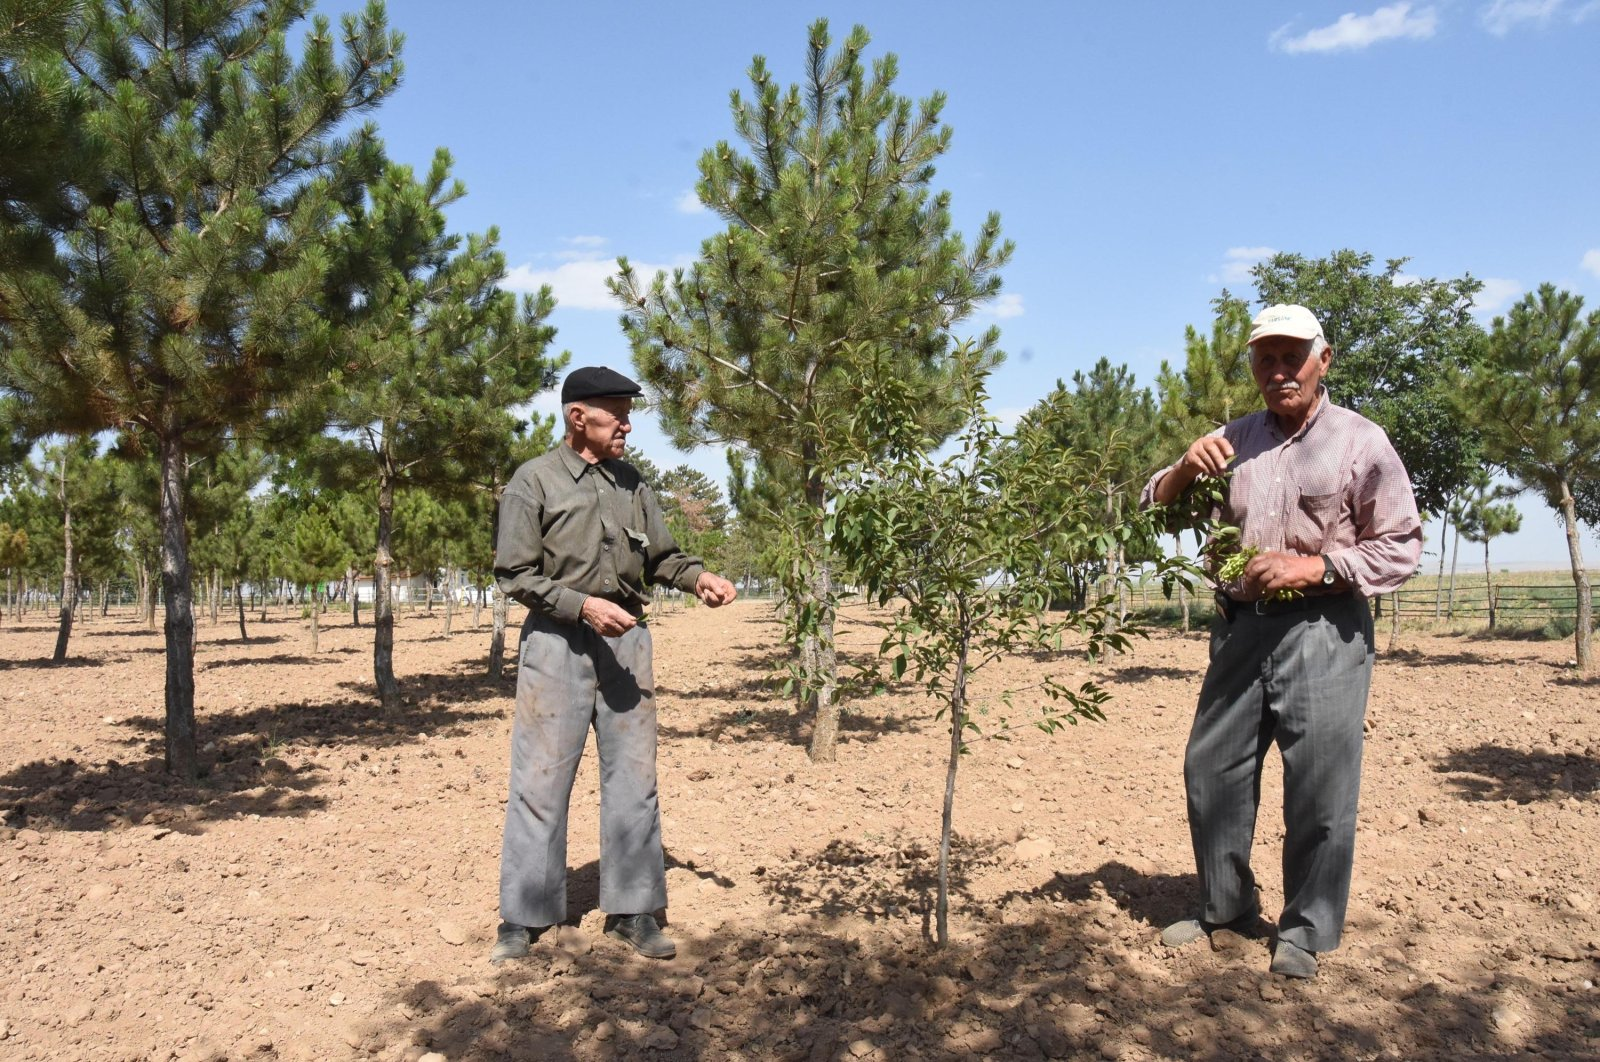 Brothers Ali (L) and Kazım (R) Özkan pose next to trees they planted in Çifteler, Eskişehir, central Turkey, Aug. 2, 2021. (DHA PHOTO)